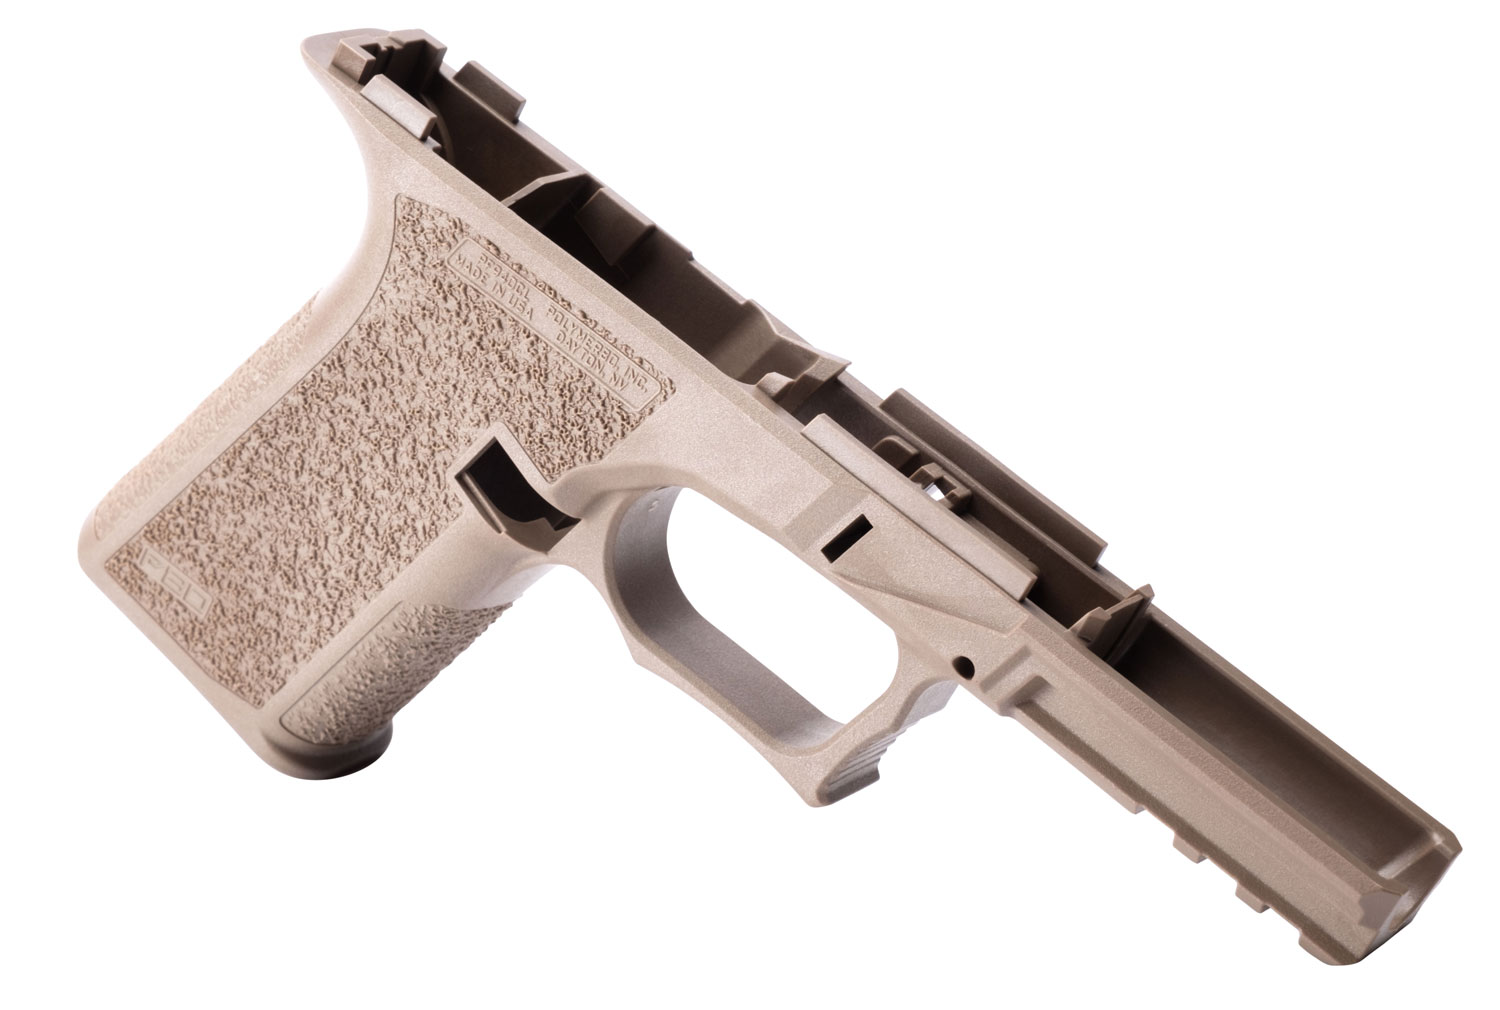 Polymer80 PF940CL Compact Long Slide Glock 17 Polymer Flat Dark Earth